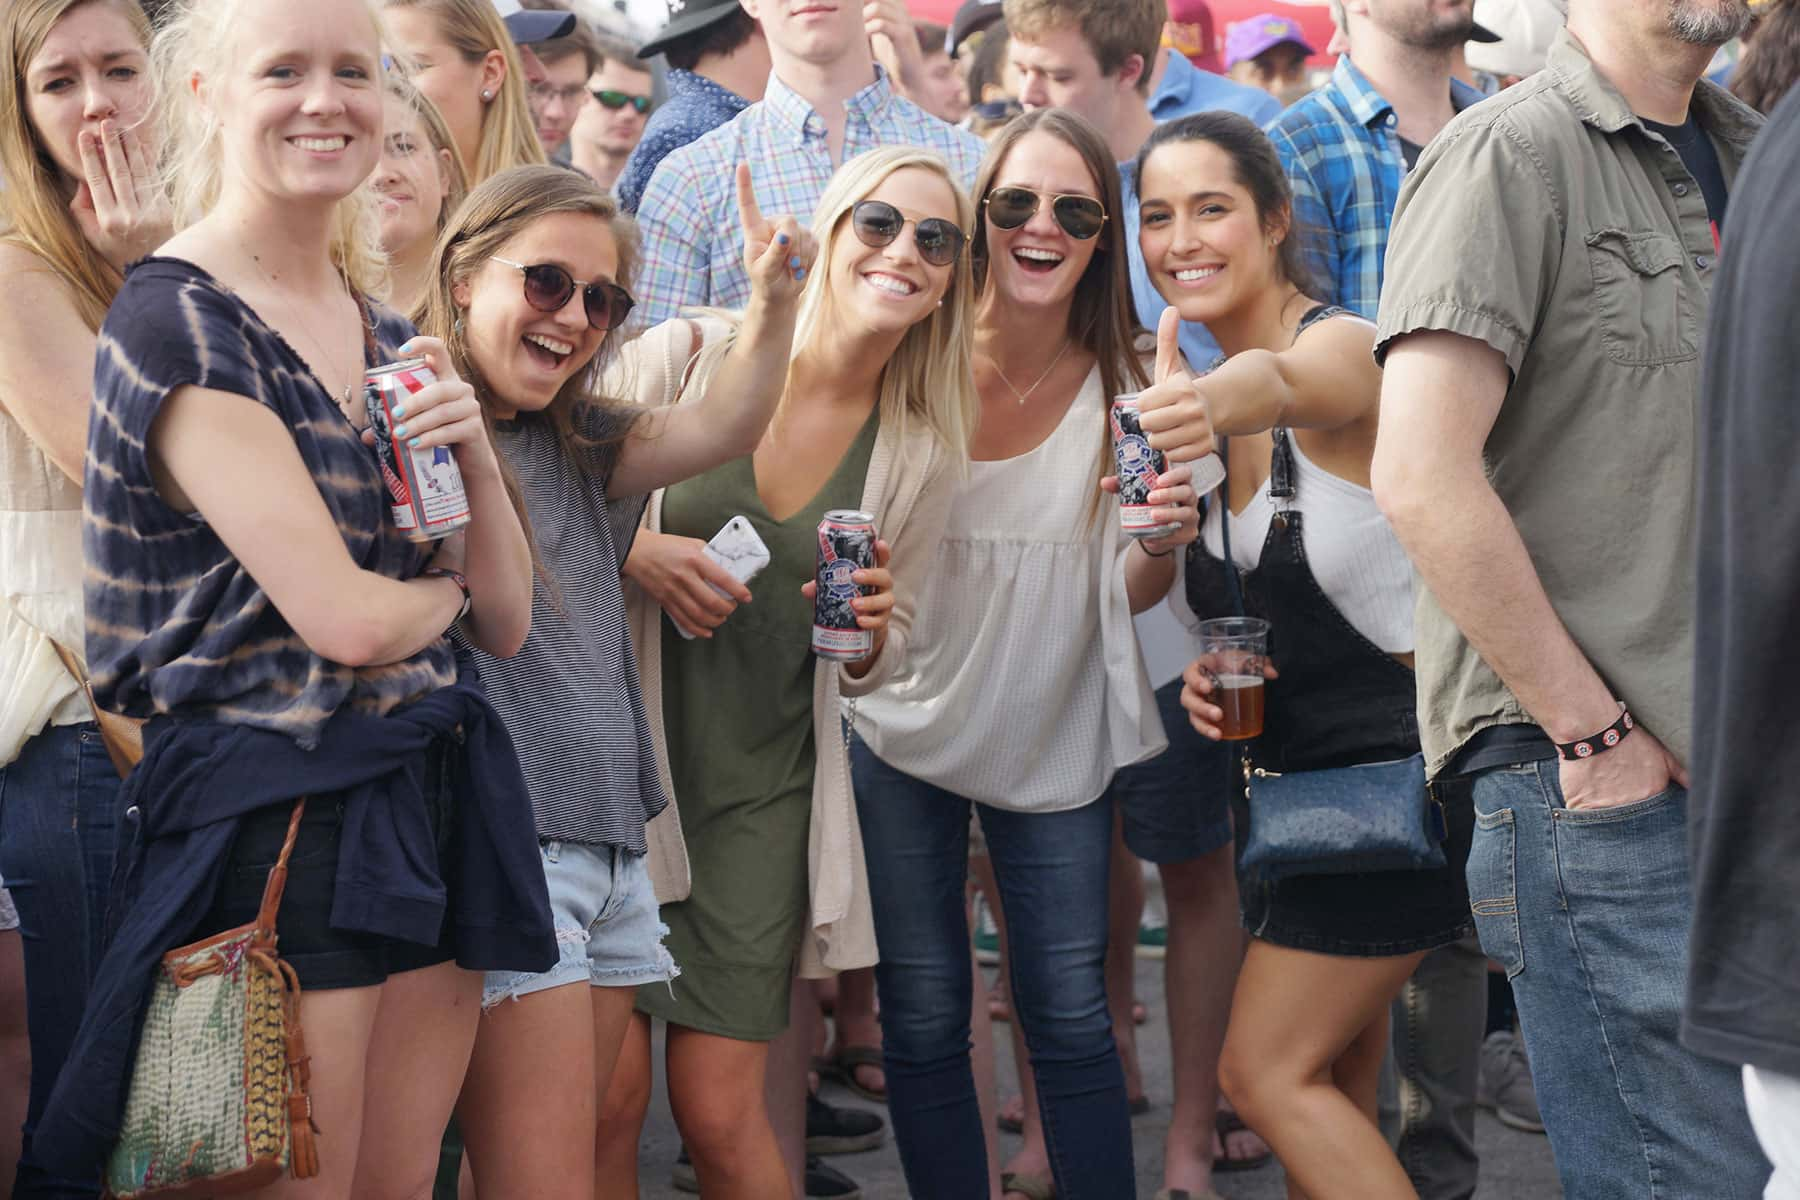 02_0217_051317_pabststreetparty_3088